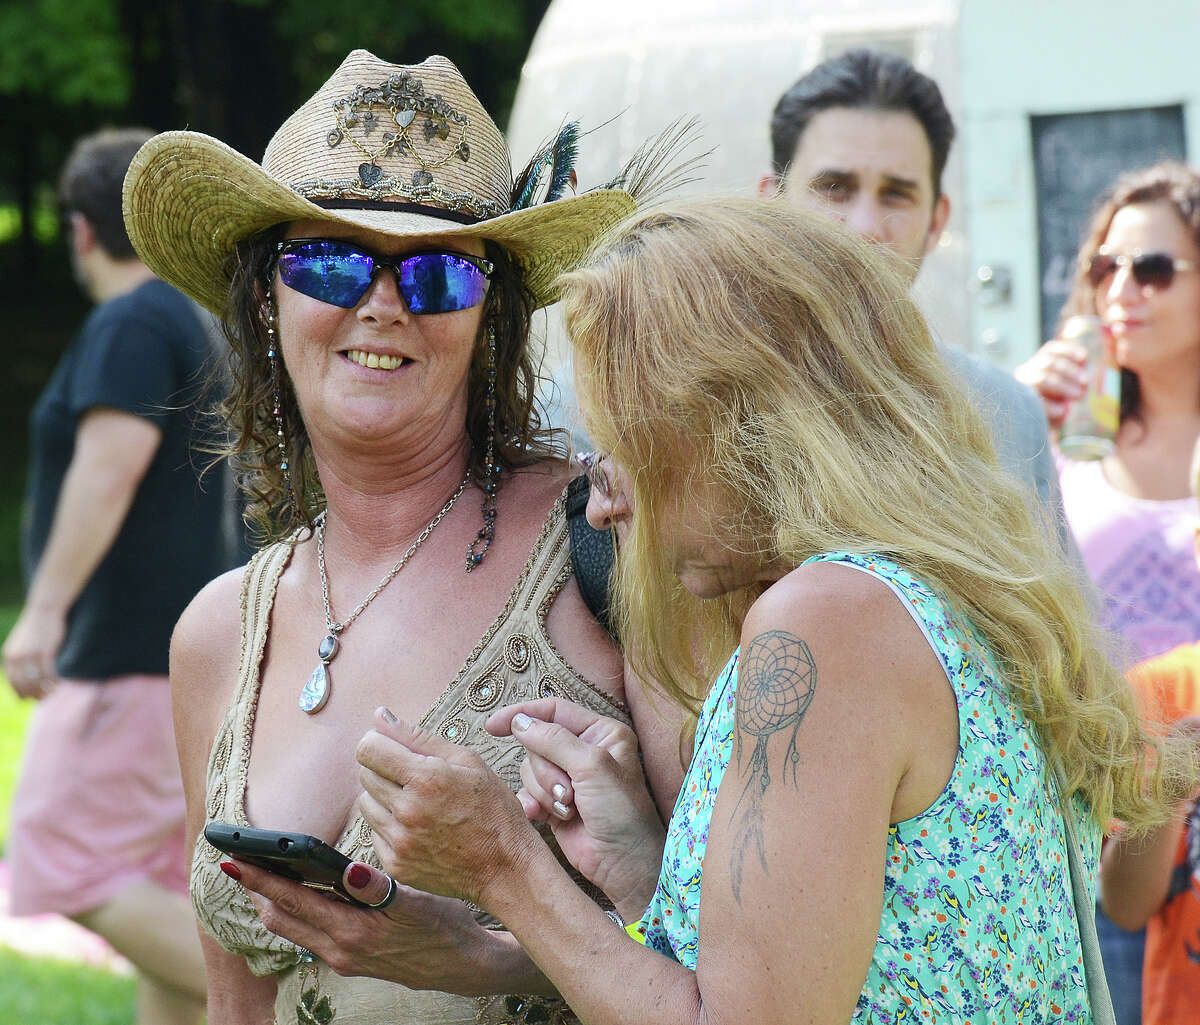 Scenes from the second annual Forever Grateful Music Festival at the Ives Concert Center in Danbury on August 20, 2016. Over 10 bands performed on two stages celebrating the music of The Grateful Dead, Allman Brothers, Bob Marley, and more. Festival goers enjoyed food, exhibitors and dancing.